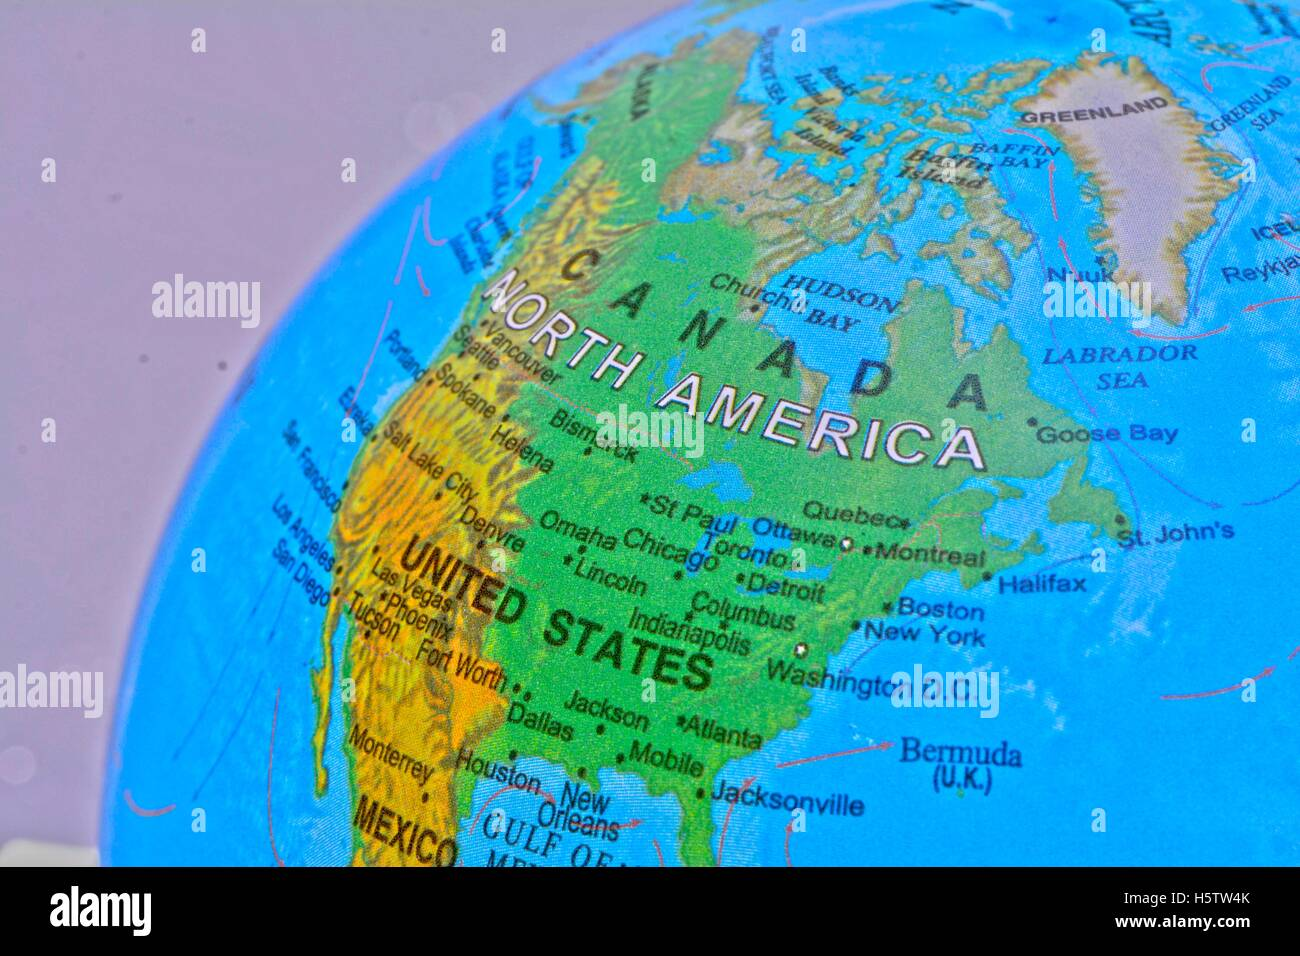 United States On Globe Stock Photos & United States On Globe ... on united states map with rivers and lakes labeled, united states waterfall locations, united states is in north america, ww1 united states map, united states usa travel map, united states cultural symbols, united states sun map, united states in 1790, united states of america news, united states richmond map, modern united states map, united states america map, united states map grey, chaco canyon archaeological site map, united states global map, large united states highway map, united states phoenix map, united states space view, silver burdett and ginn inc. united states map, united states capes,